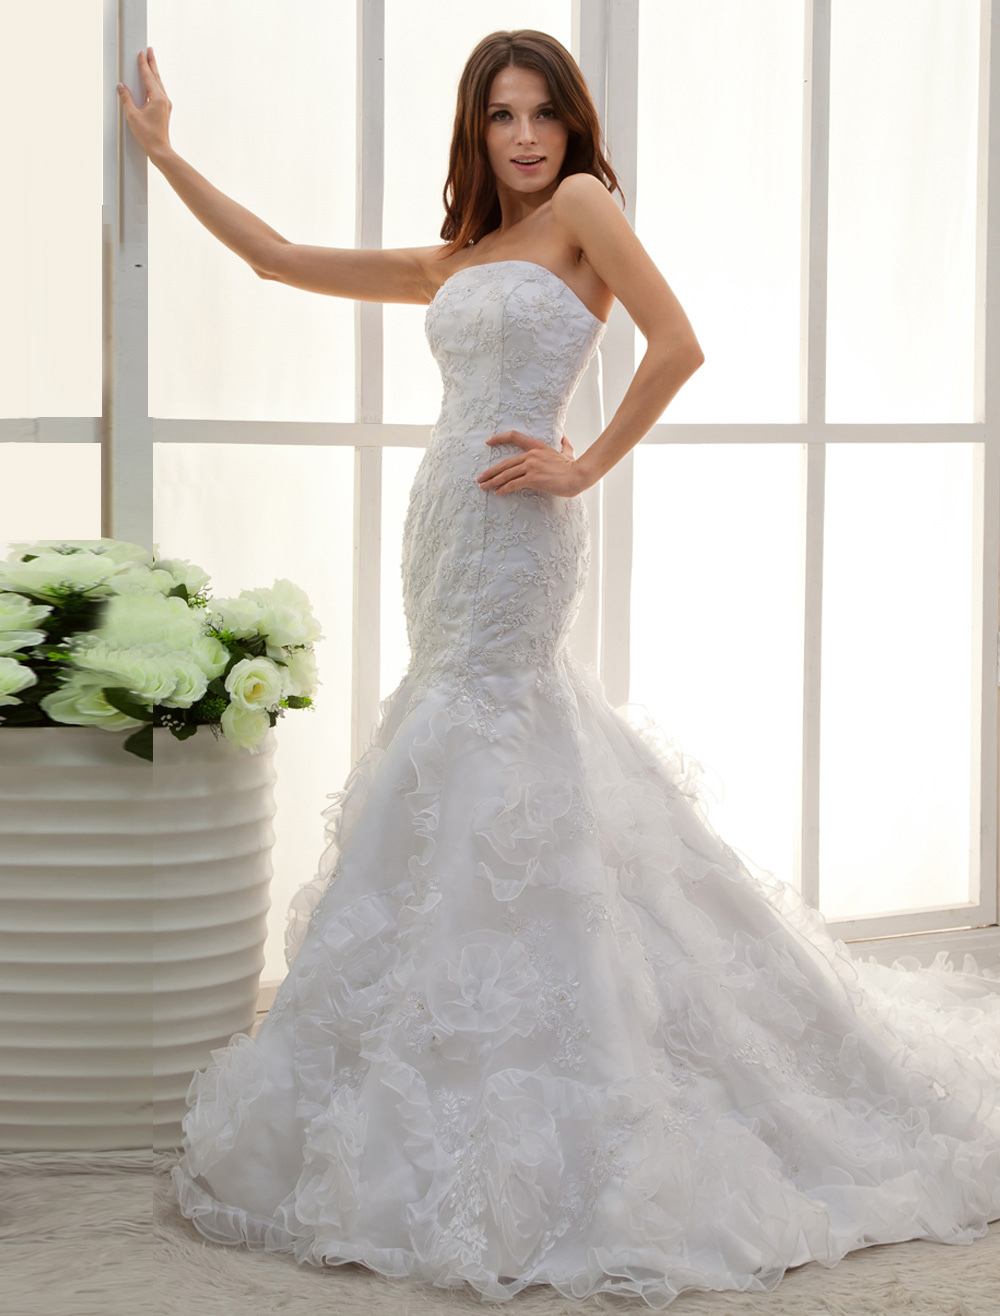 White Strapless Applique Lace Mermaid Trumpet Wedding Dress